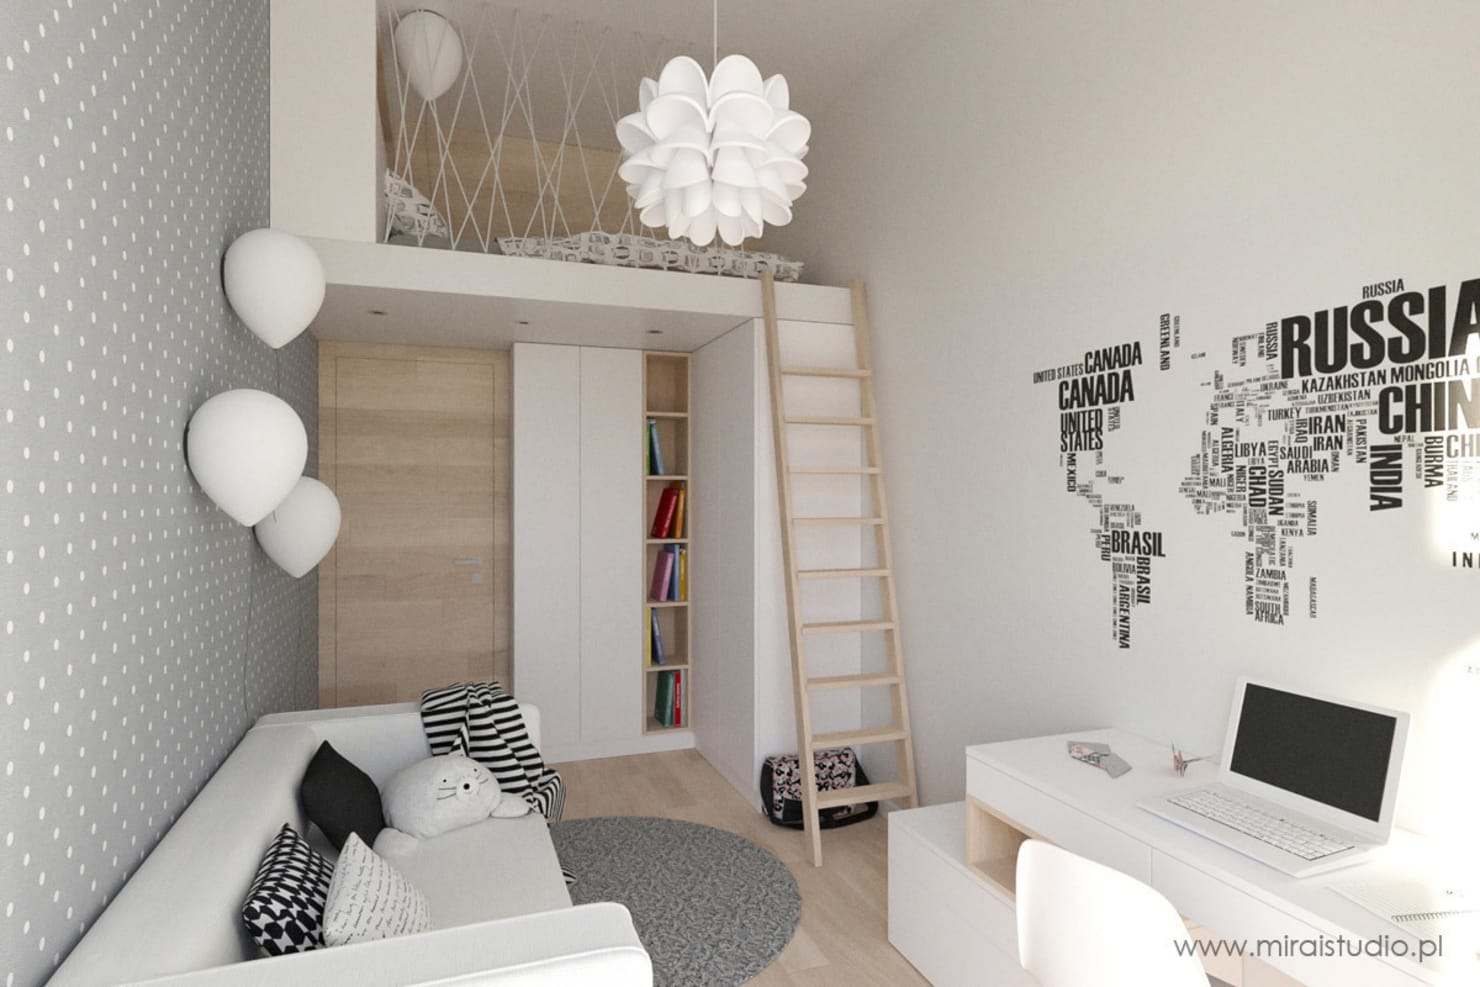 10 easy and low-cost ways to get more space in your home